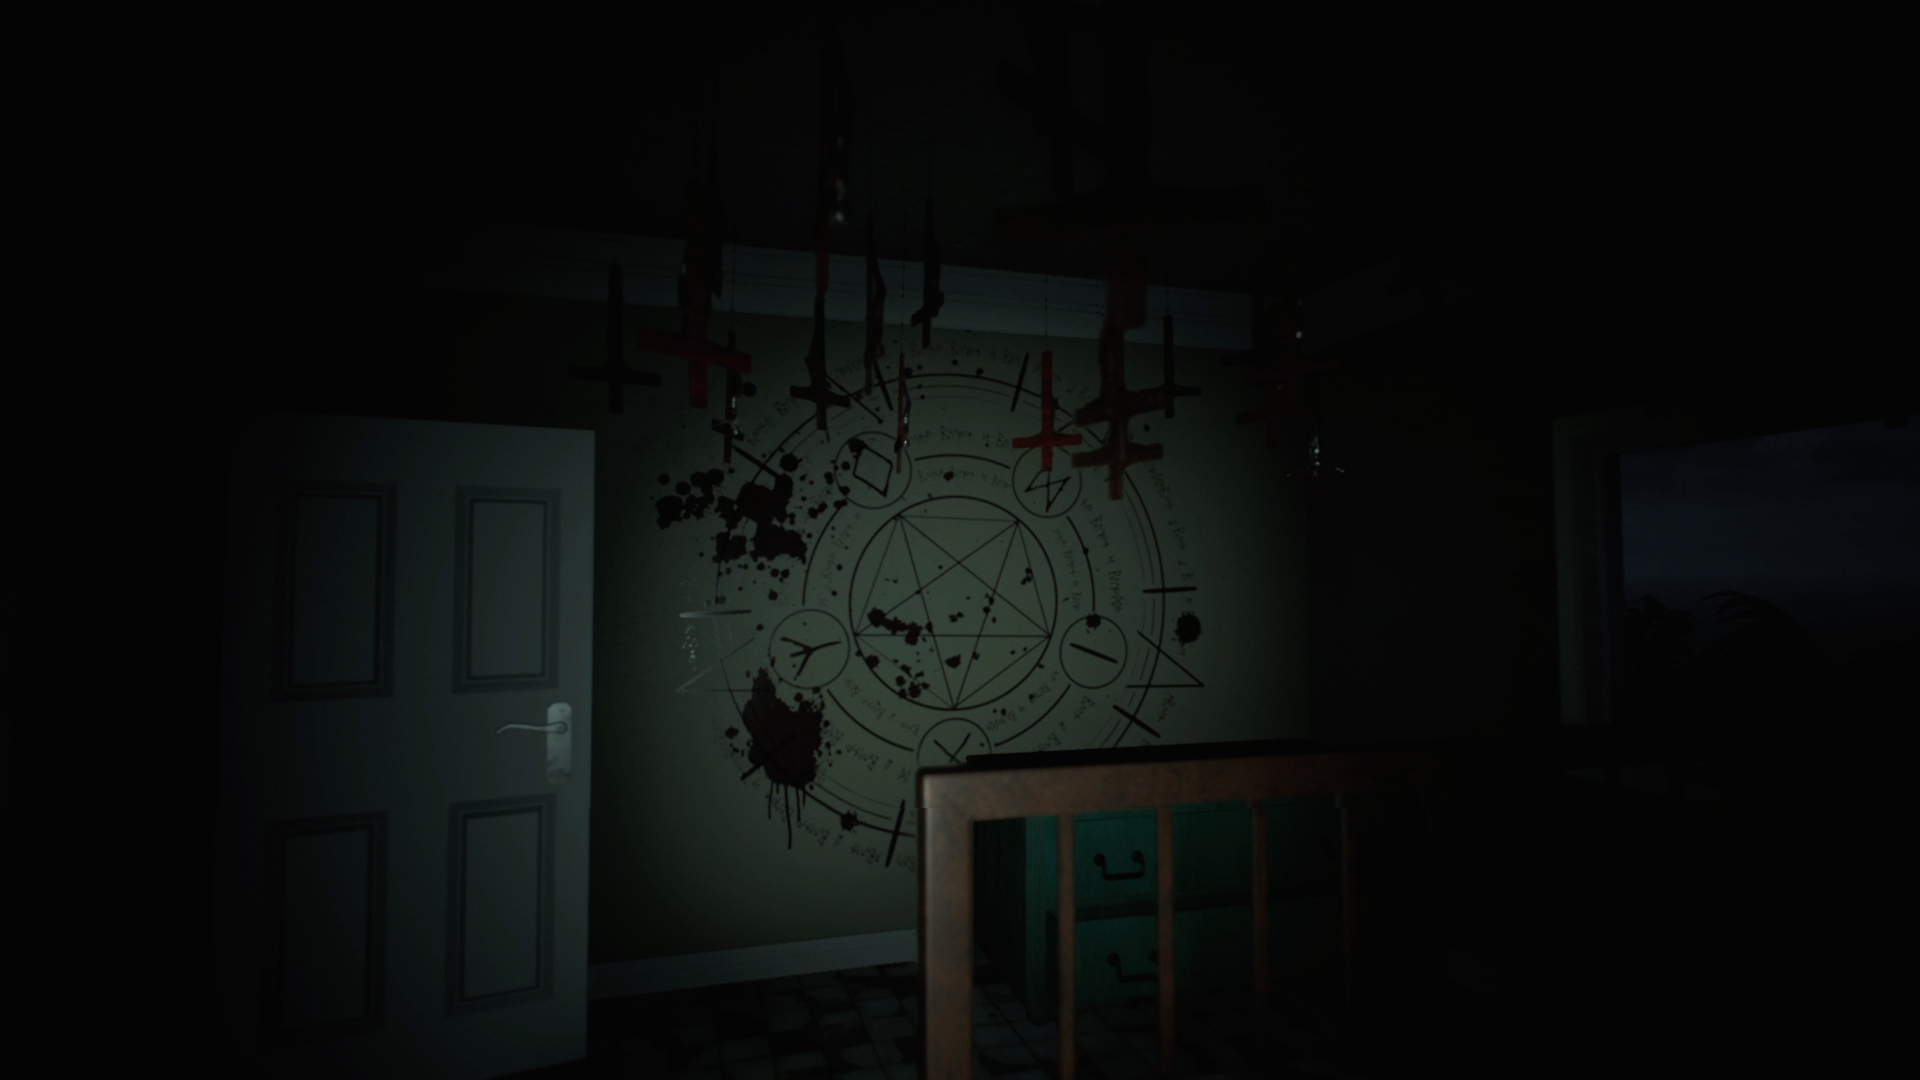 Infliction_Reveal_Room_4.png